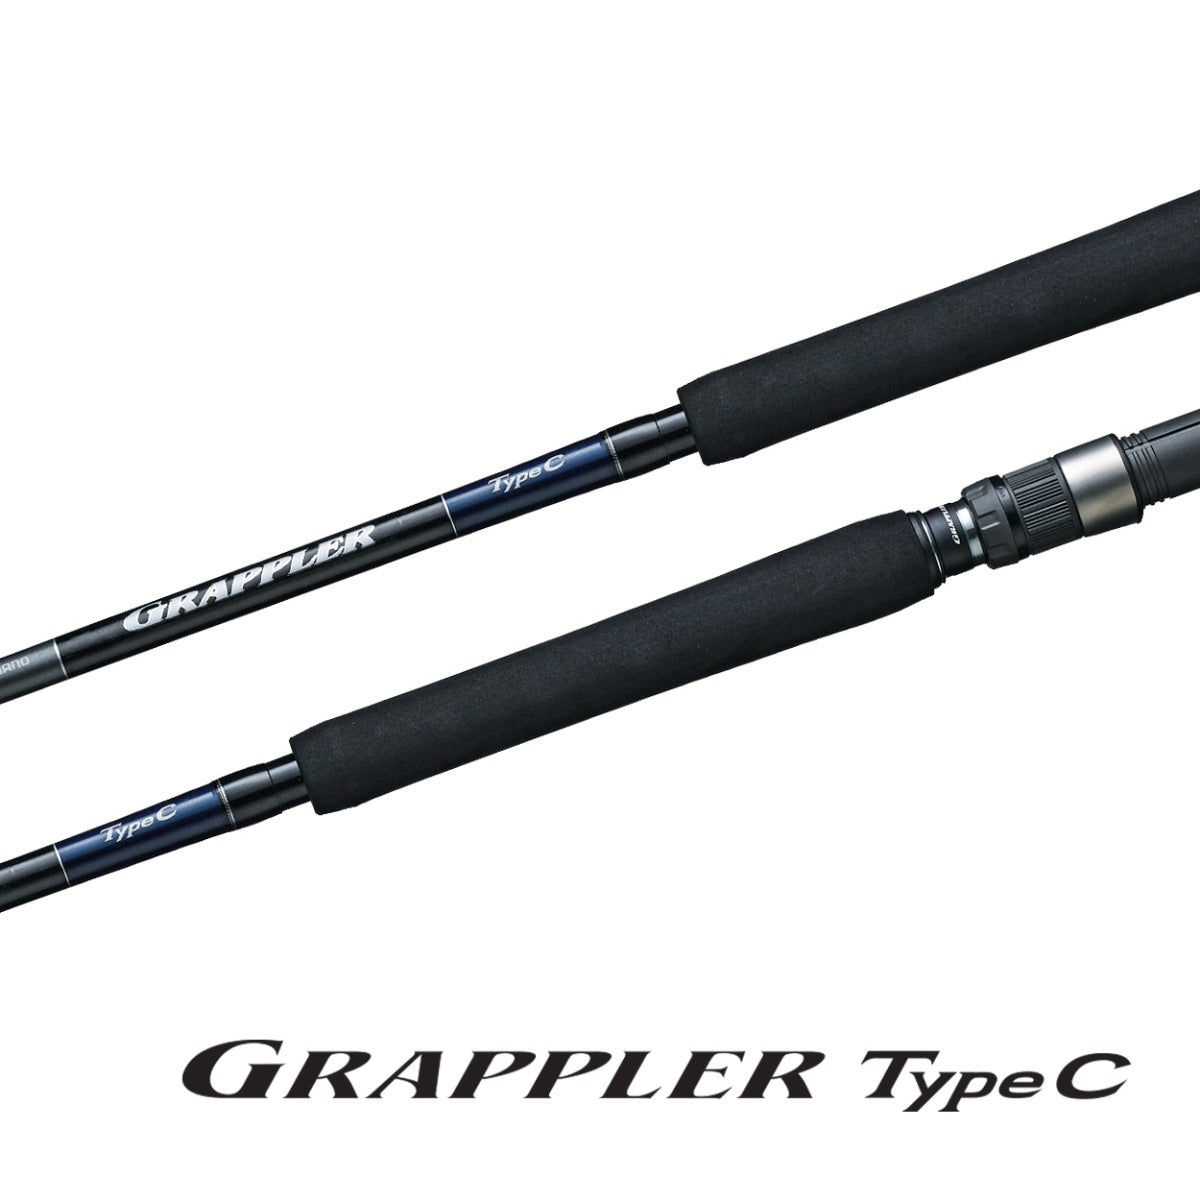 Shimano 2019 Grappler Type C Spinning Rod